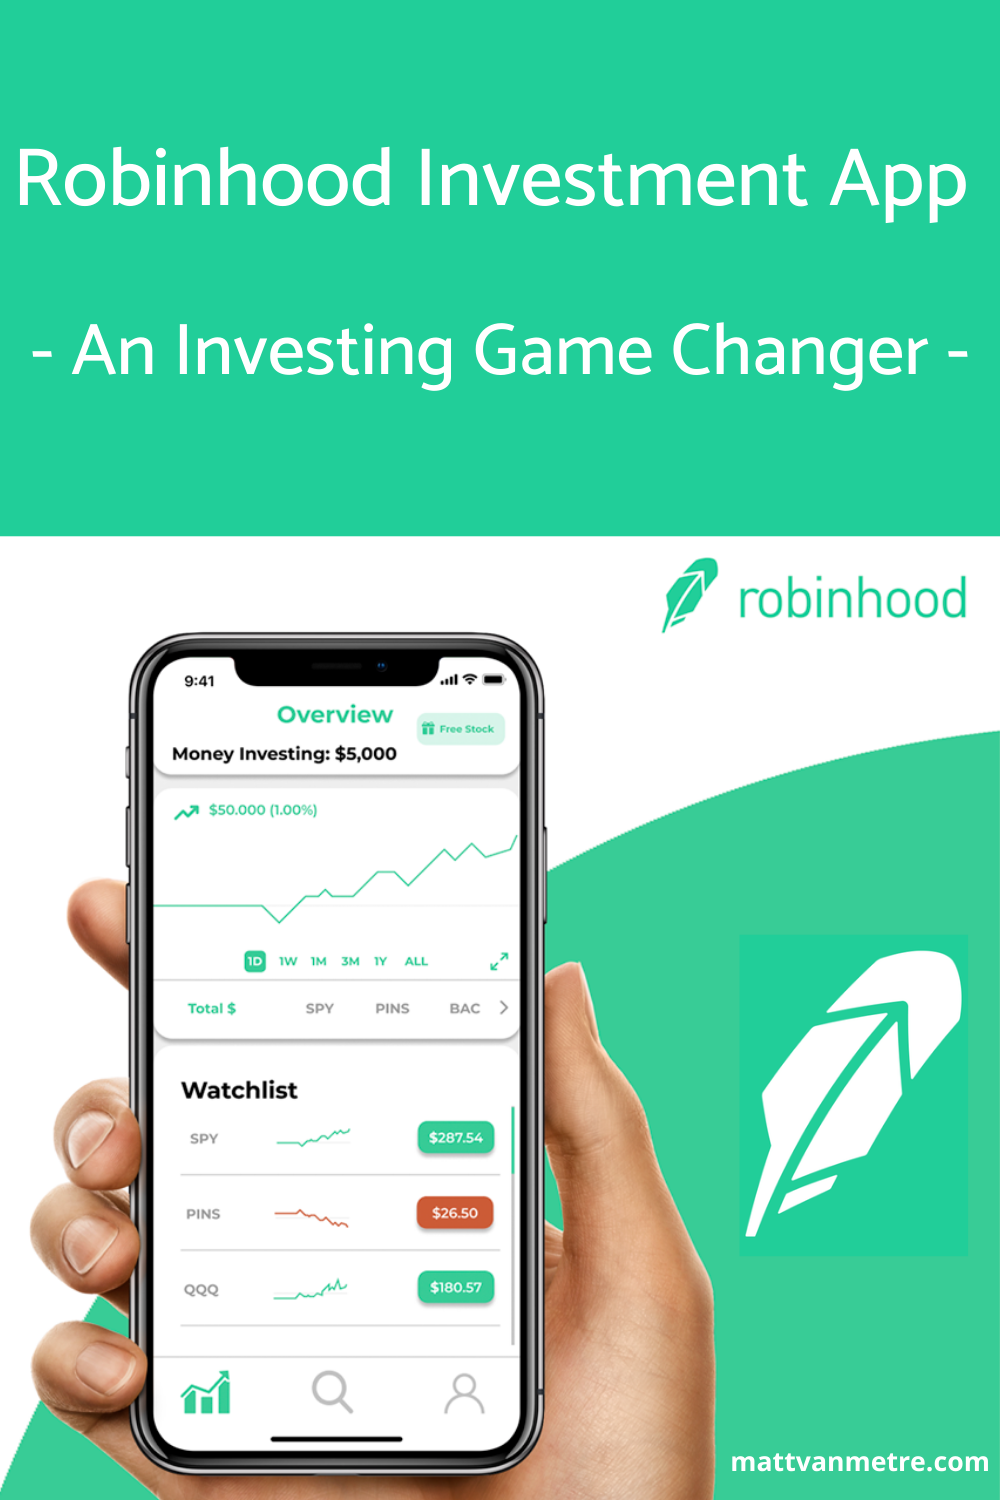 Robinhood Investment App An Investing Game Changer